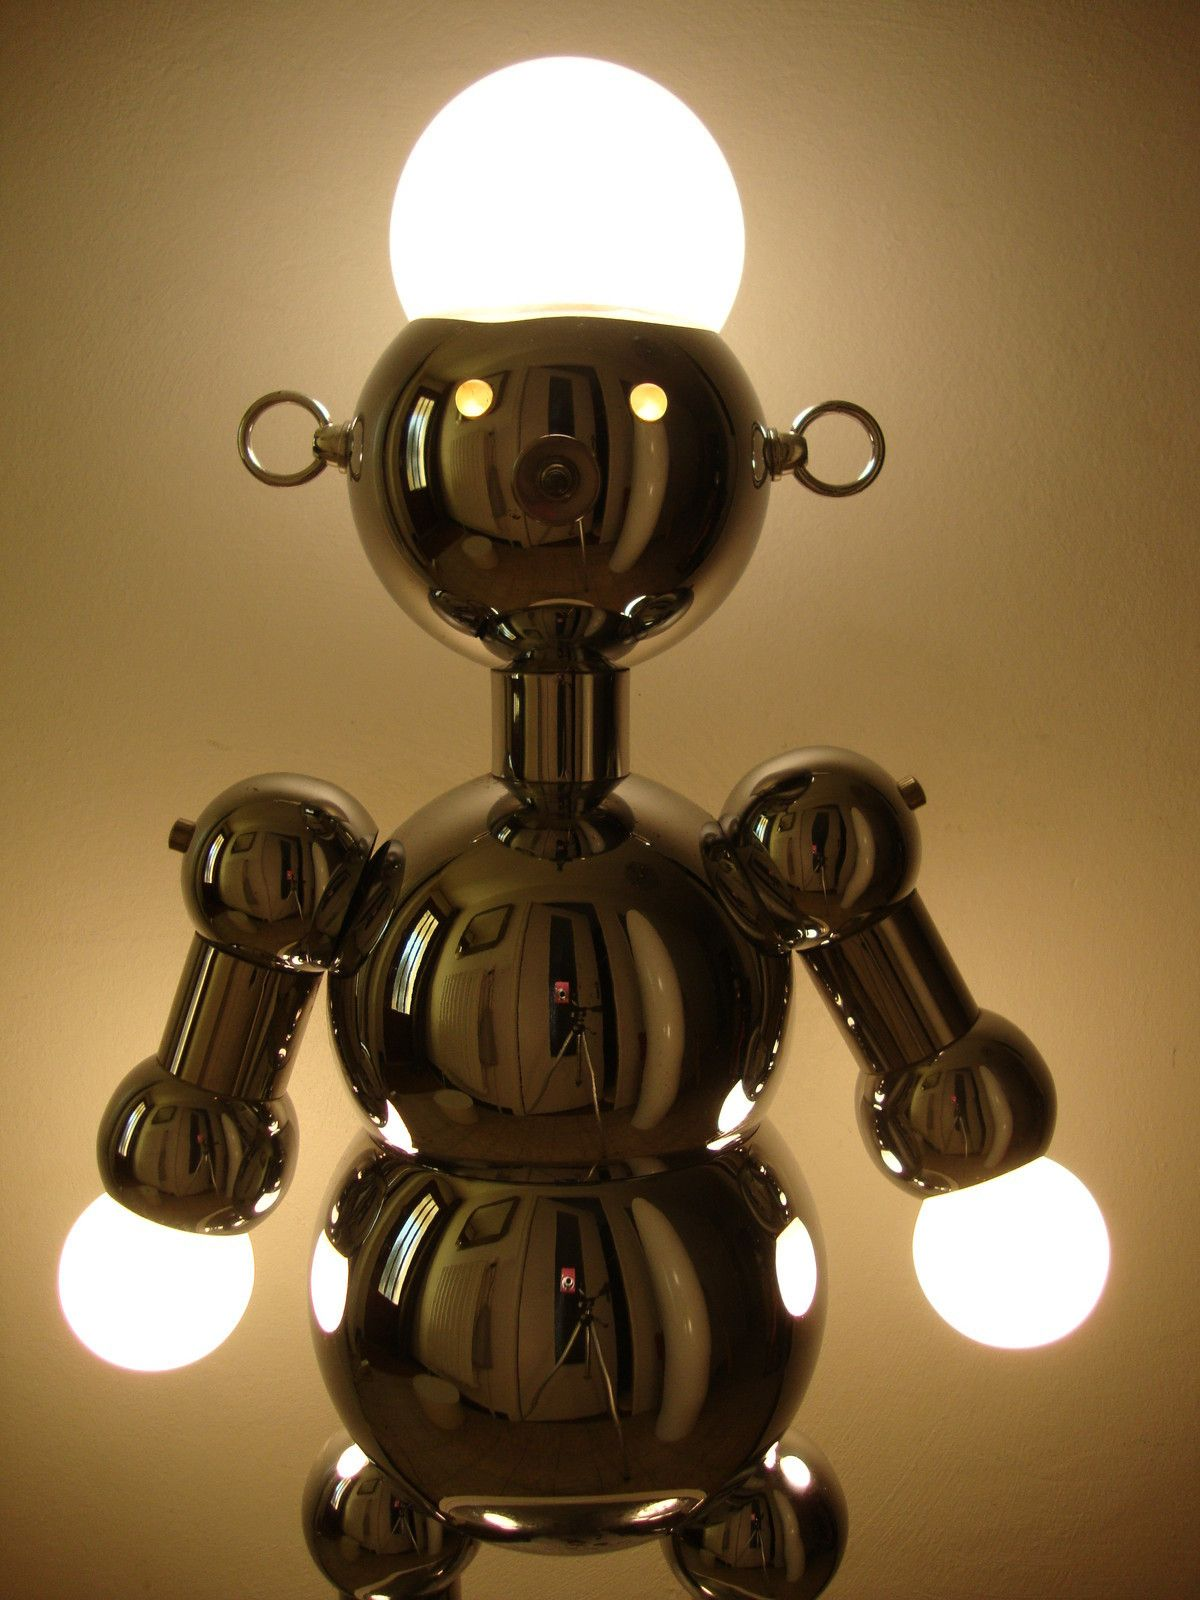 Huge Rare Vintage Mid Century Chrome Torino Robot Lamp 26 Eames Space Toy 1860 On Ebay Robot Lamp Lamp Space Toys